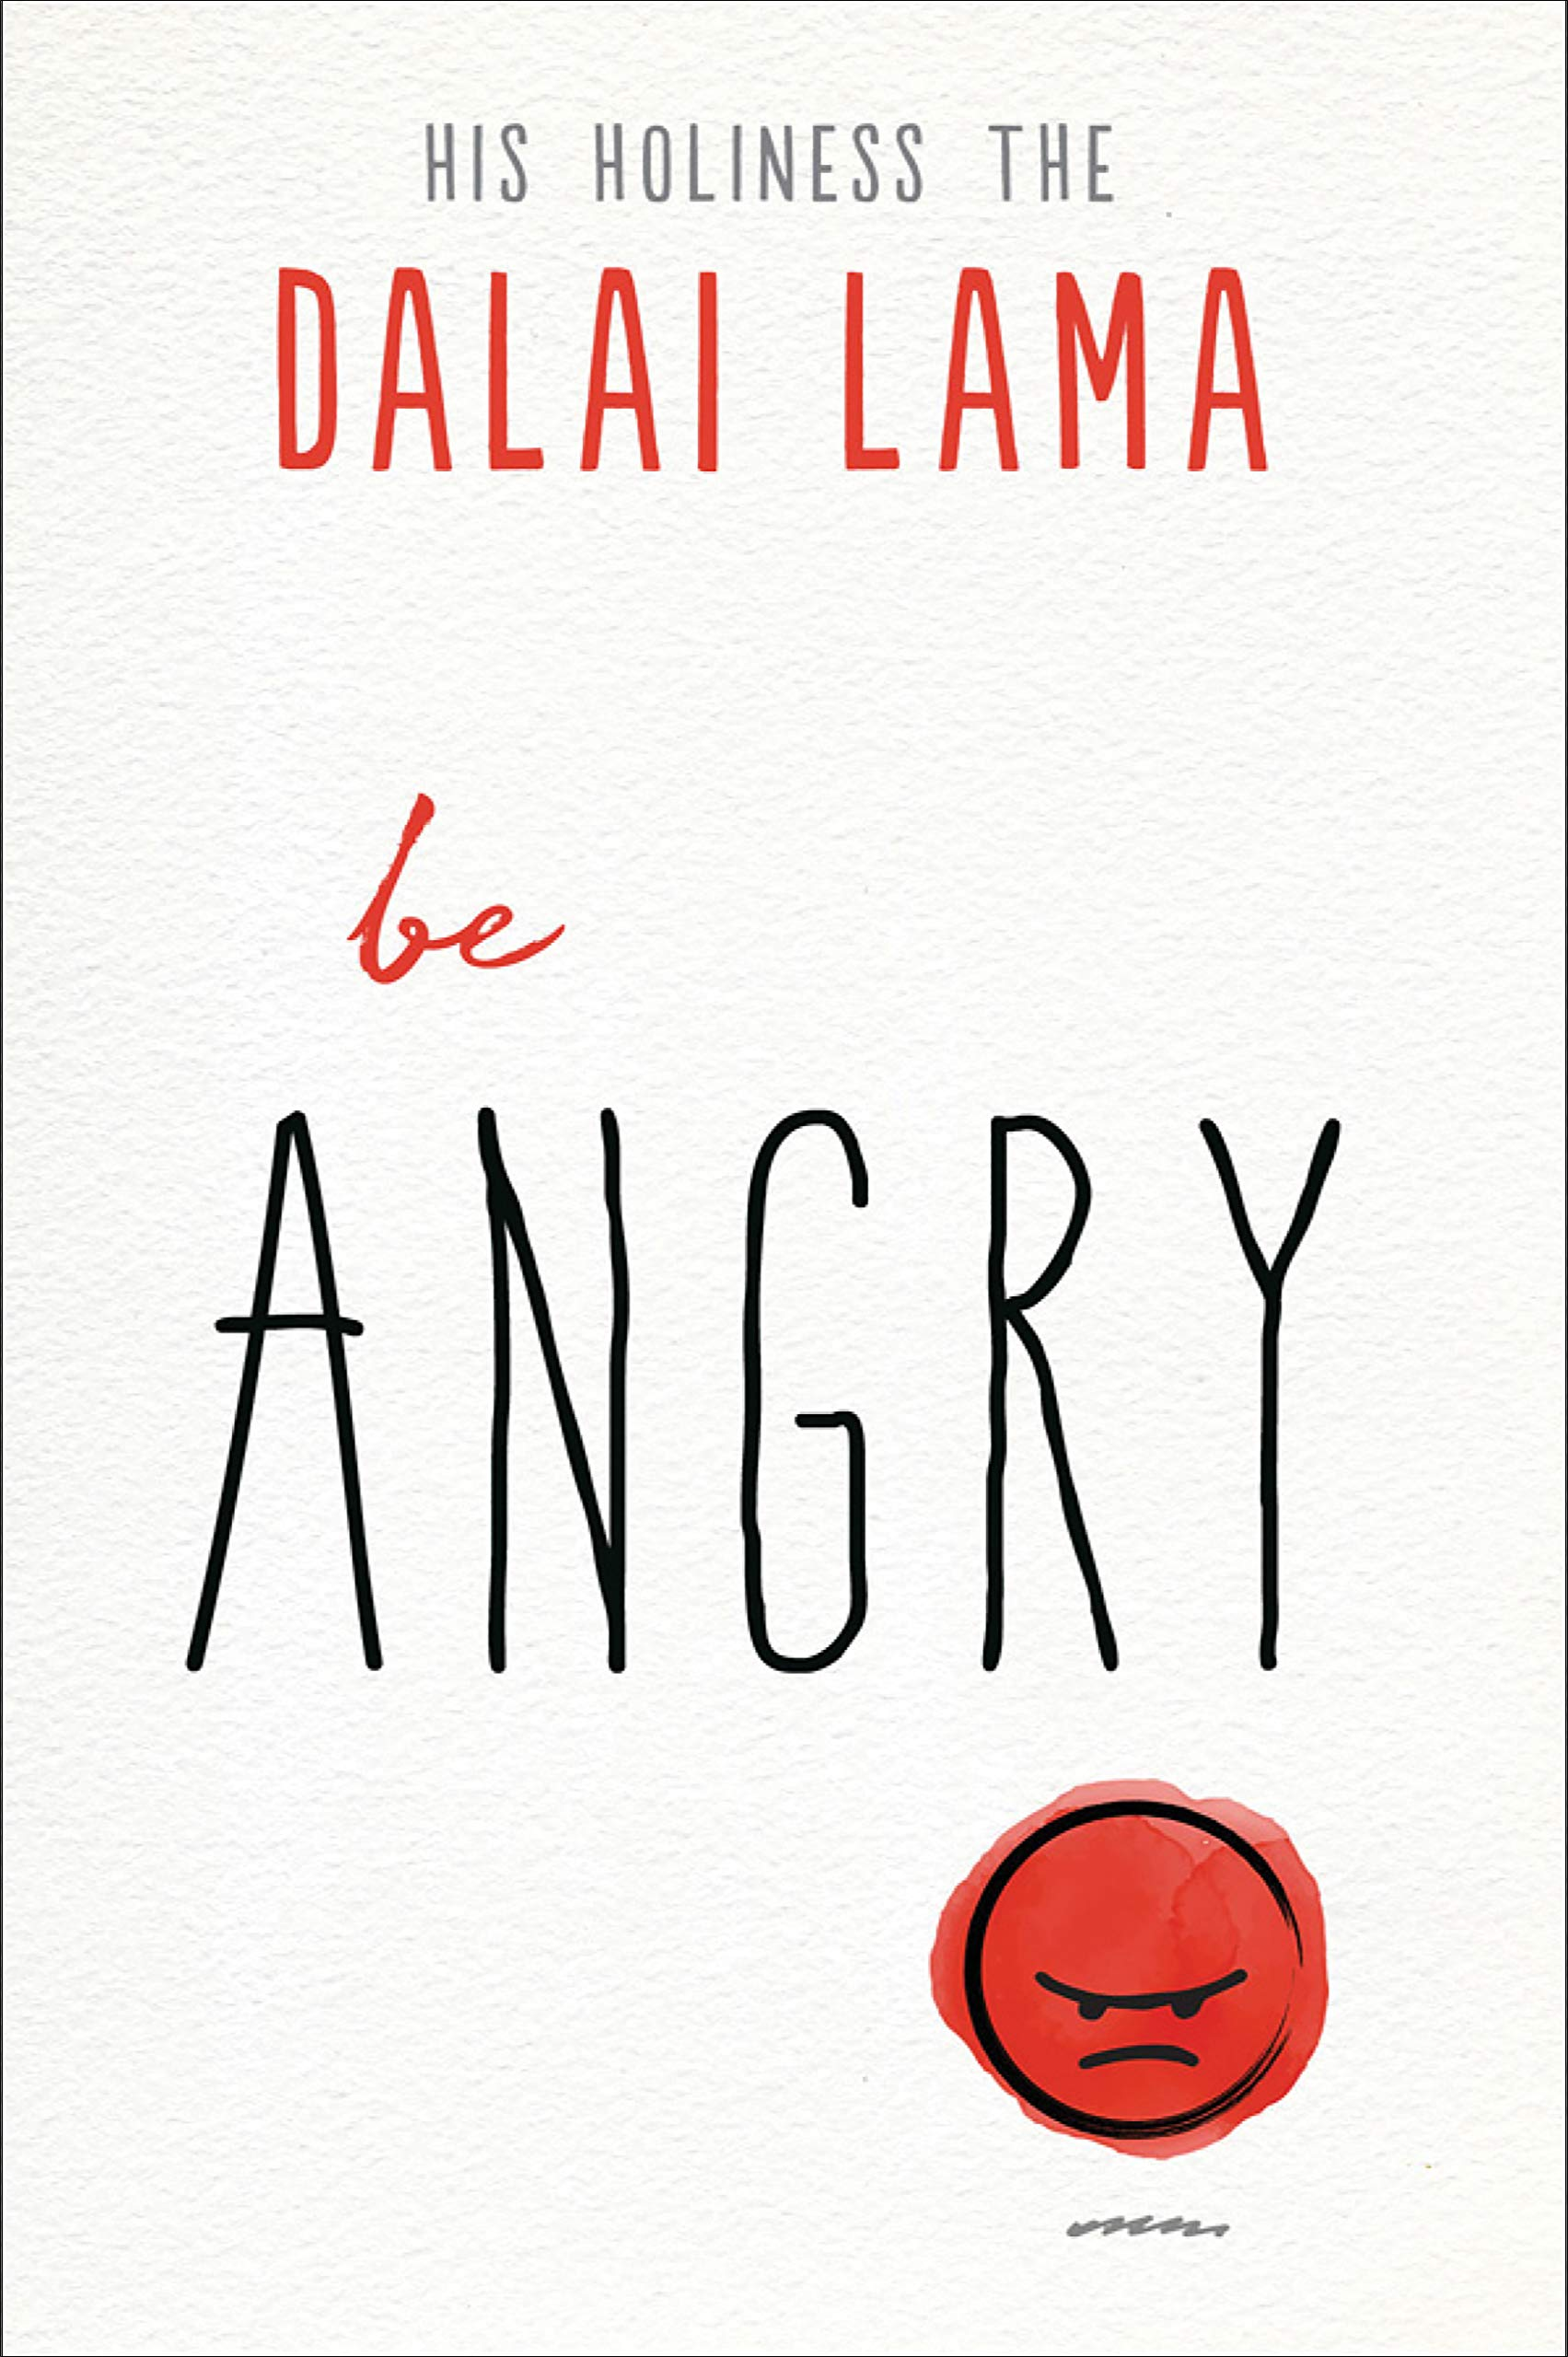 BE ANGRY by The Dalai Lama